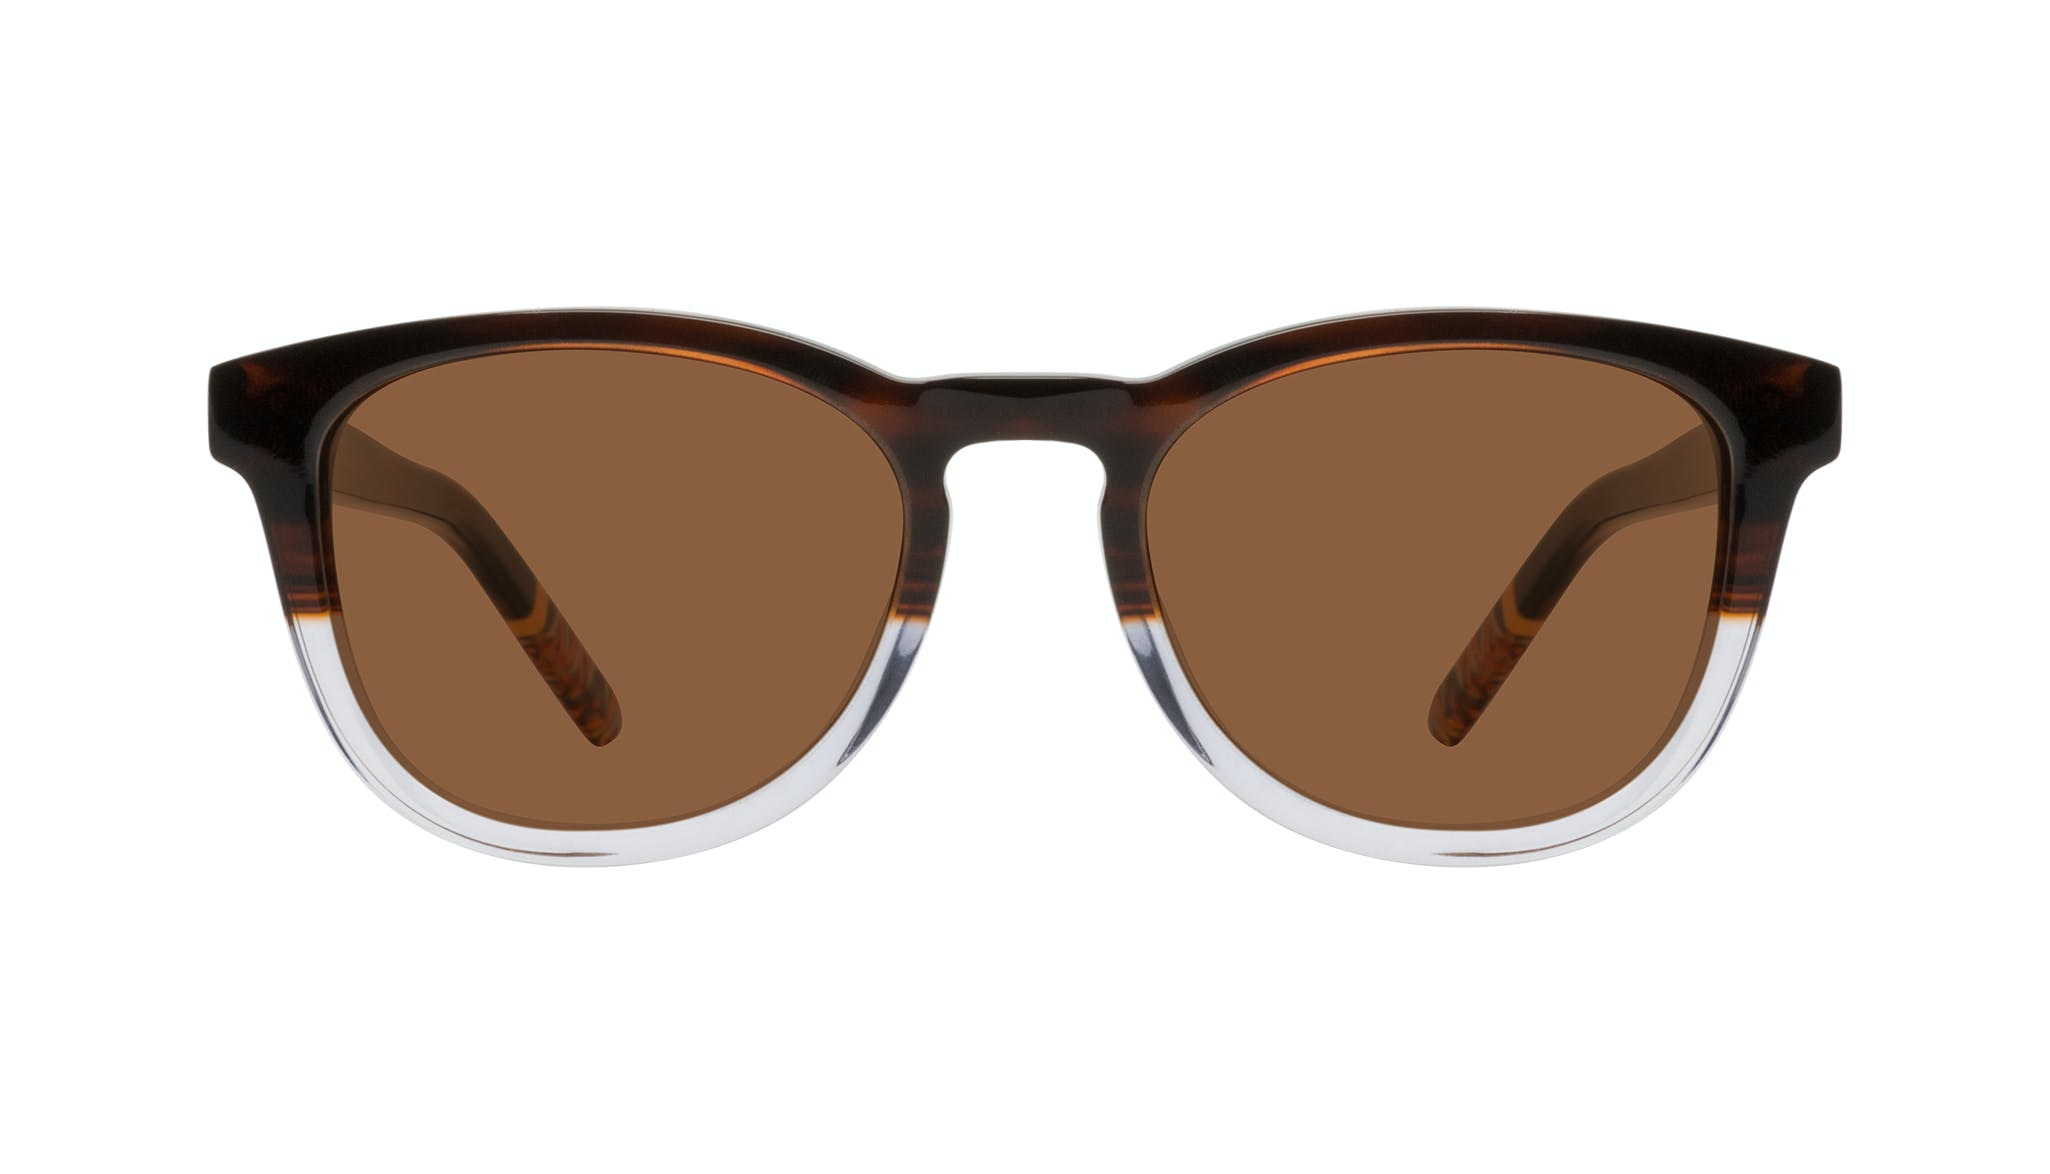 Affordable Fashion Glasses Round Sunglasses Men Goal Bark